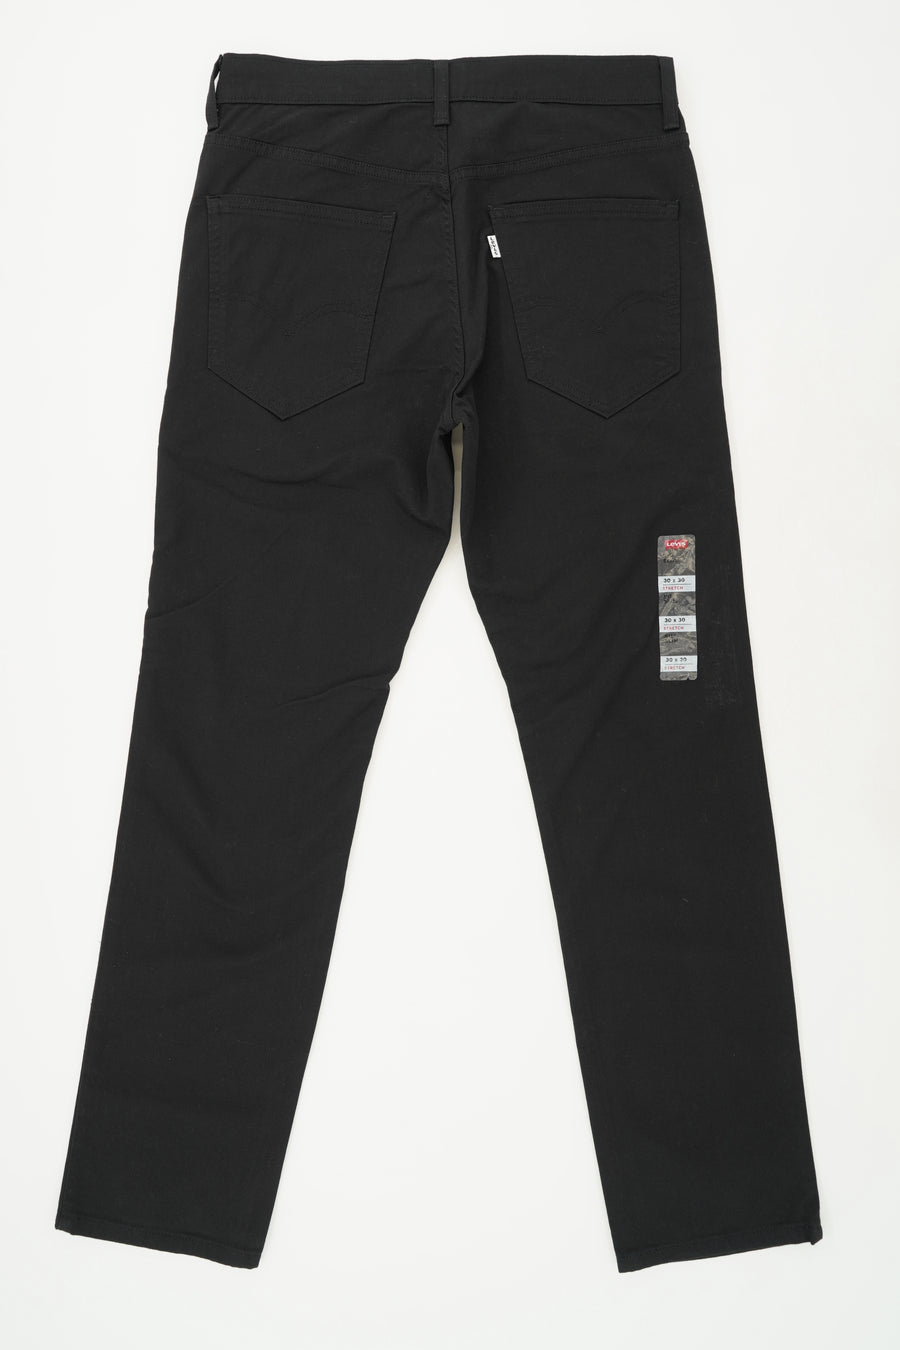 511 Slim Stretch Trousers Size 30x30